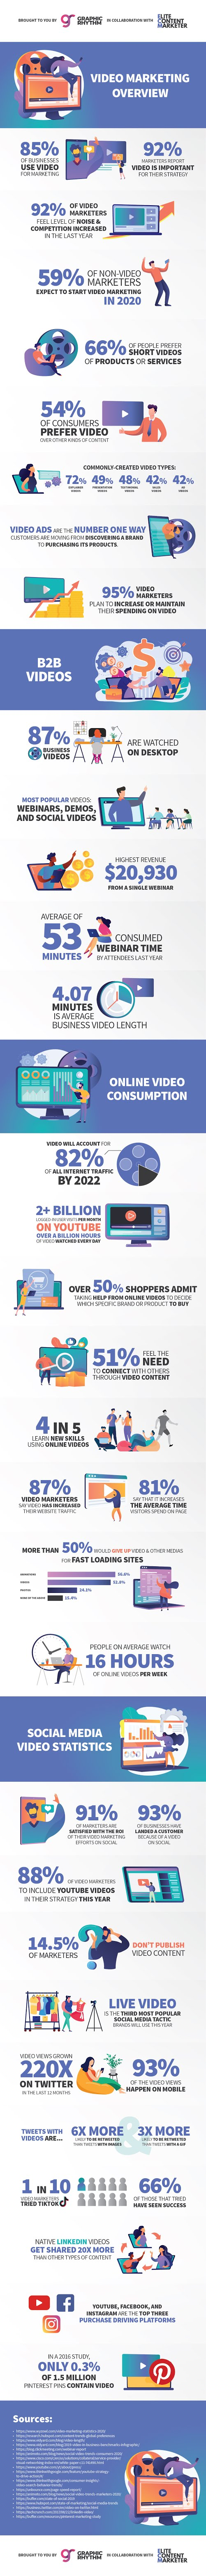 Video Marketing Overview #infographic